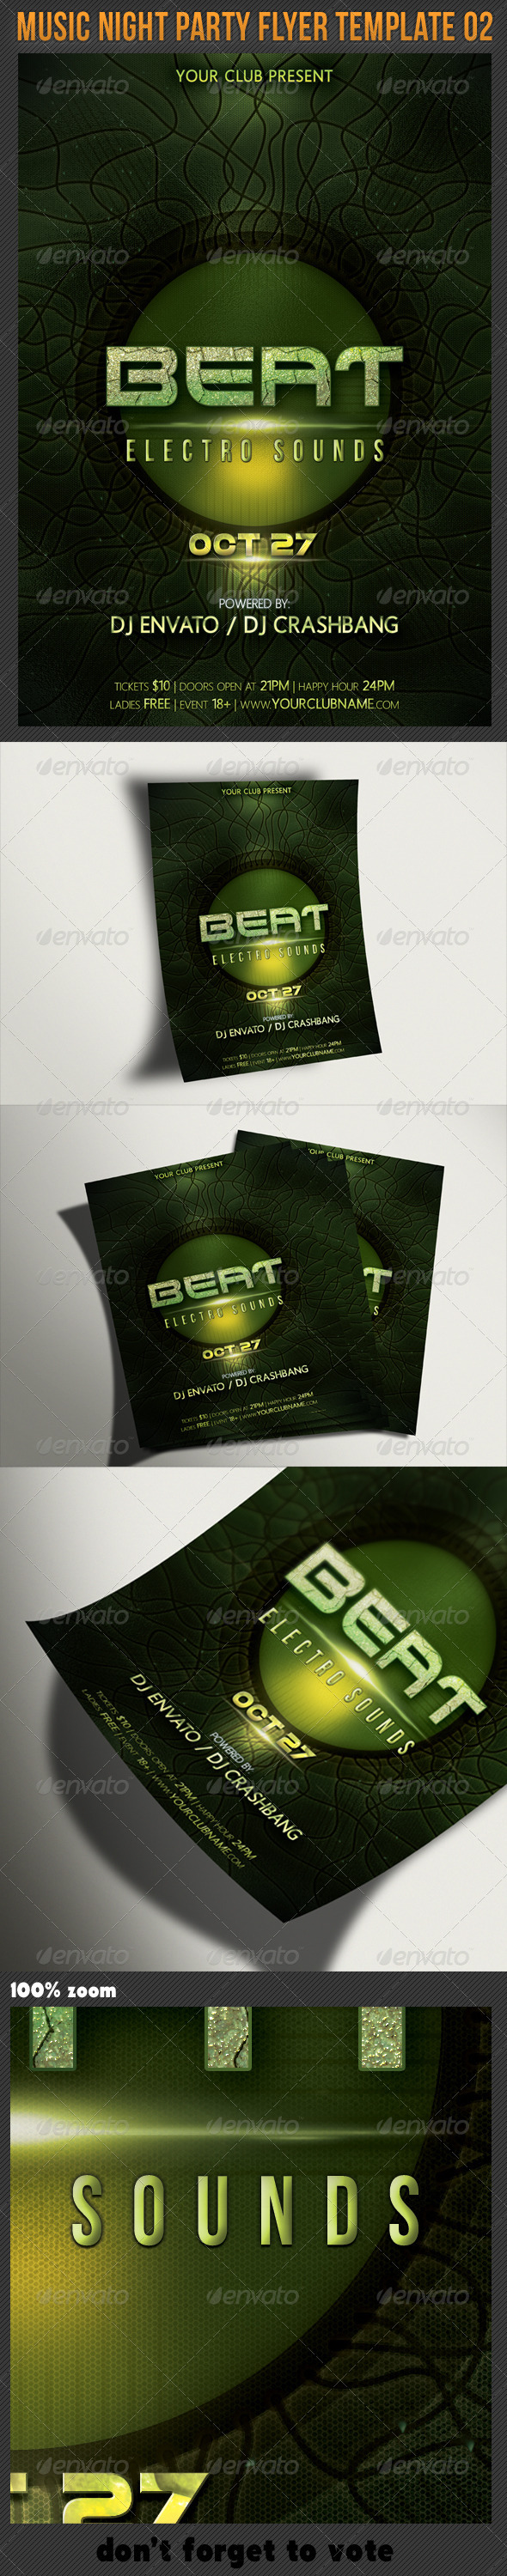 Music Night Party Flyer Template 02 - Clubs & Parties Events